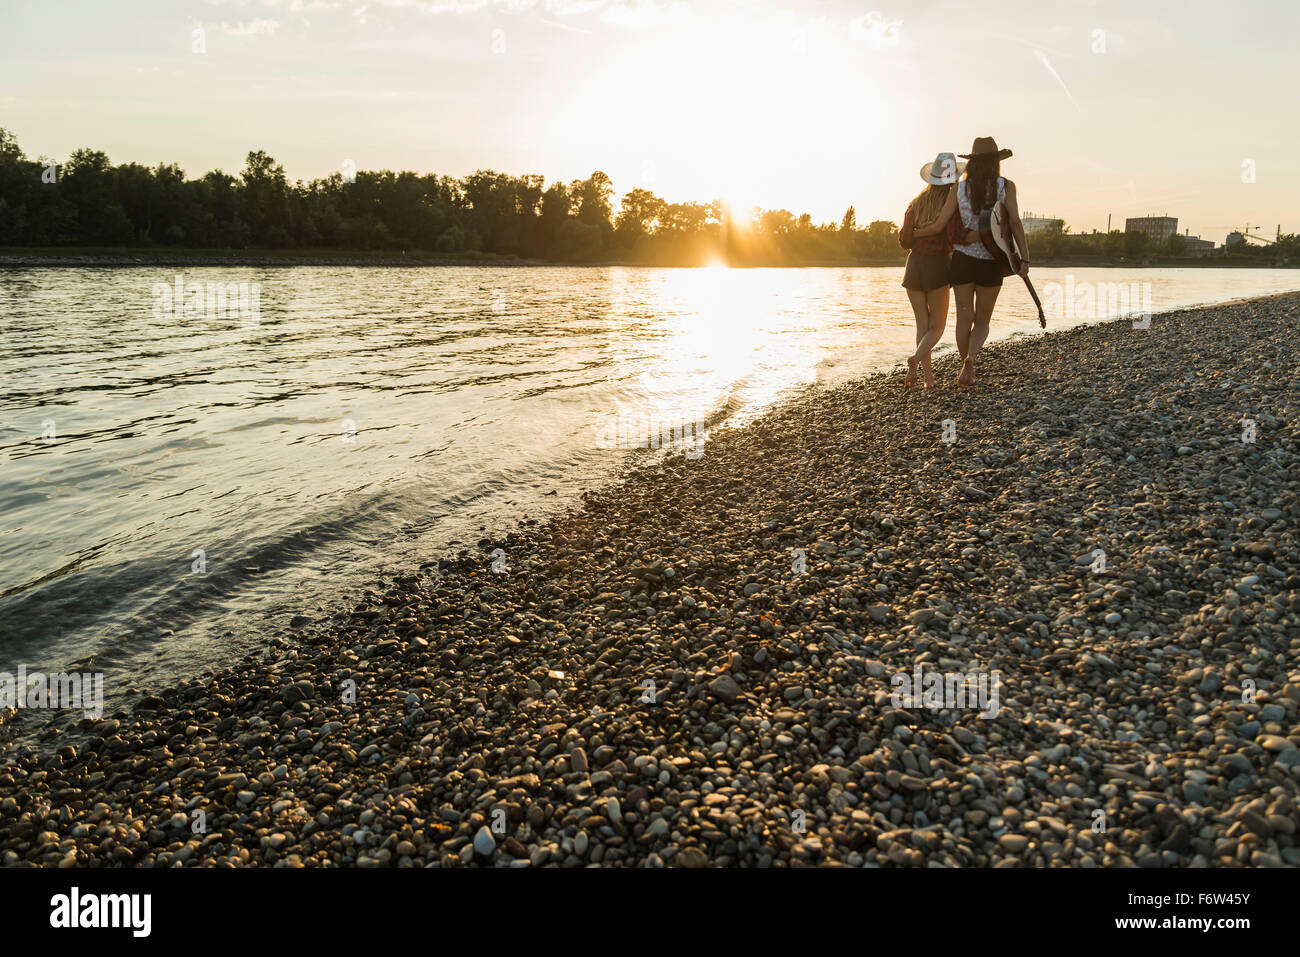 Two friends walking at the riverside at sunset - Stock Image